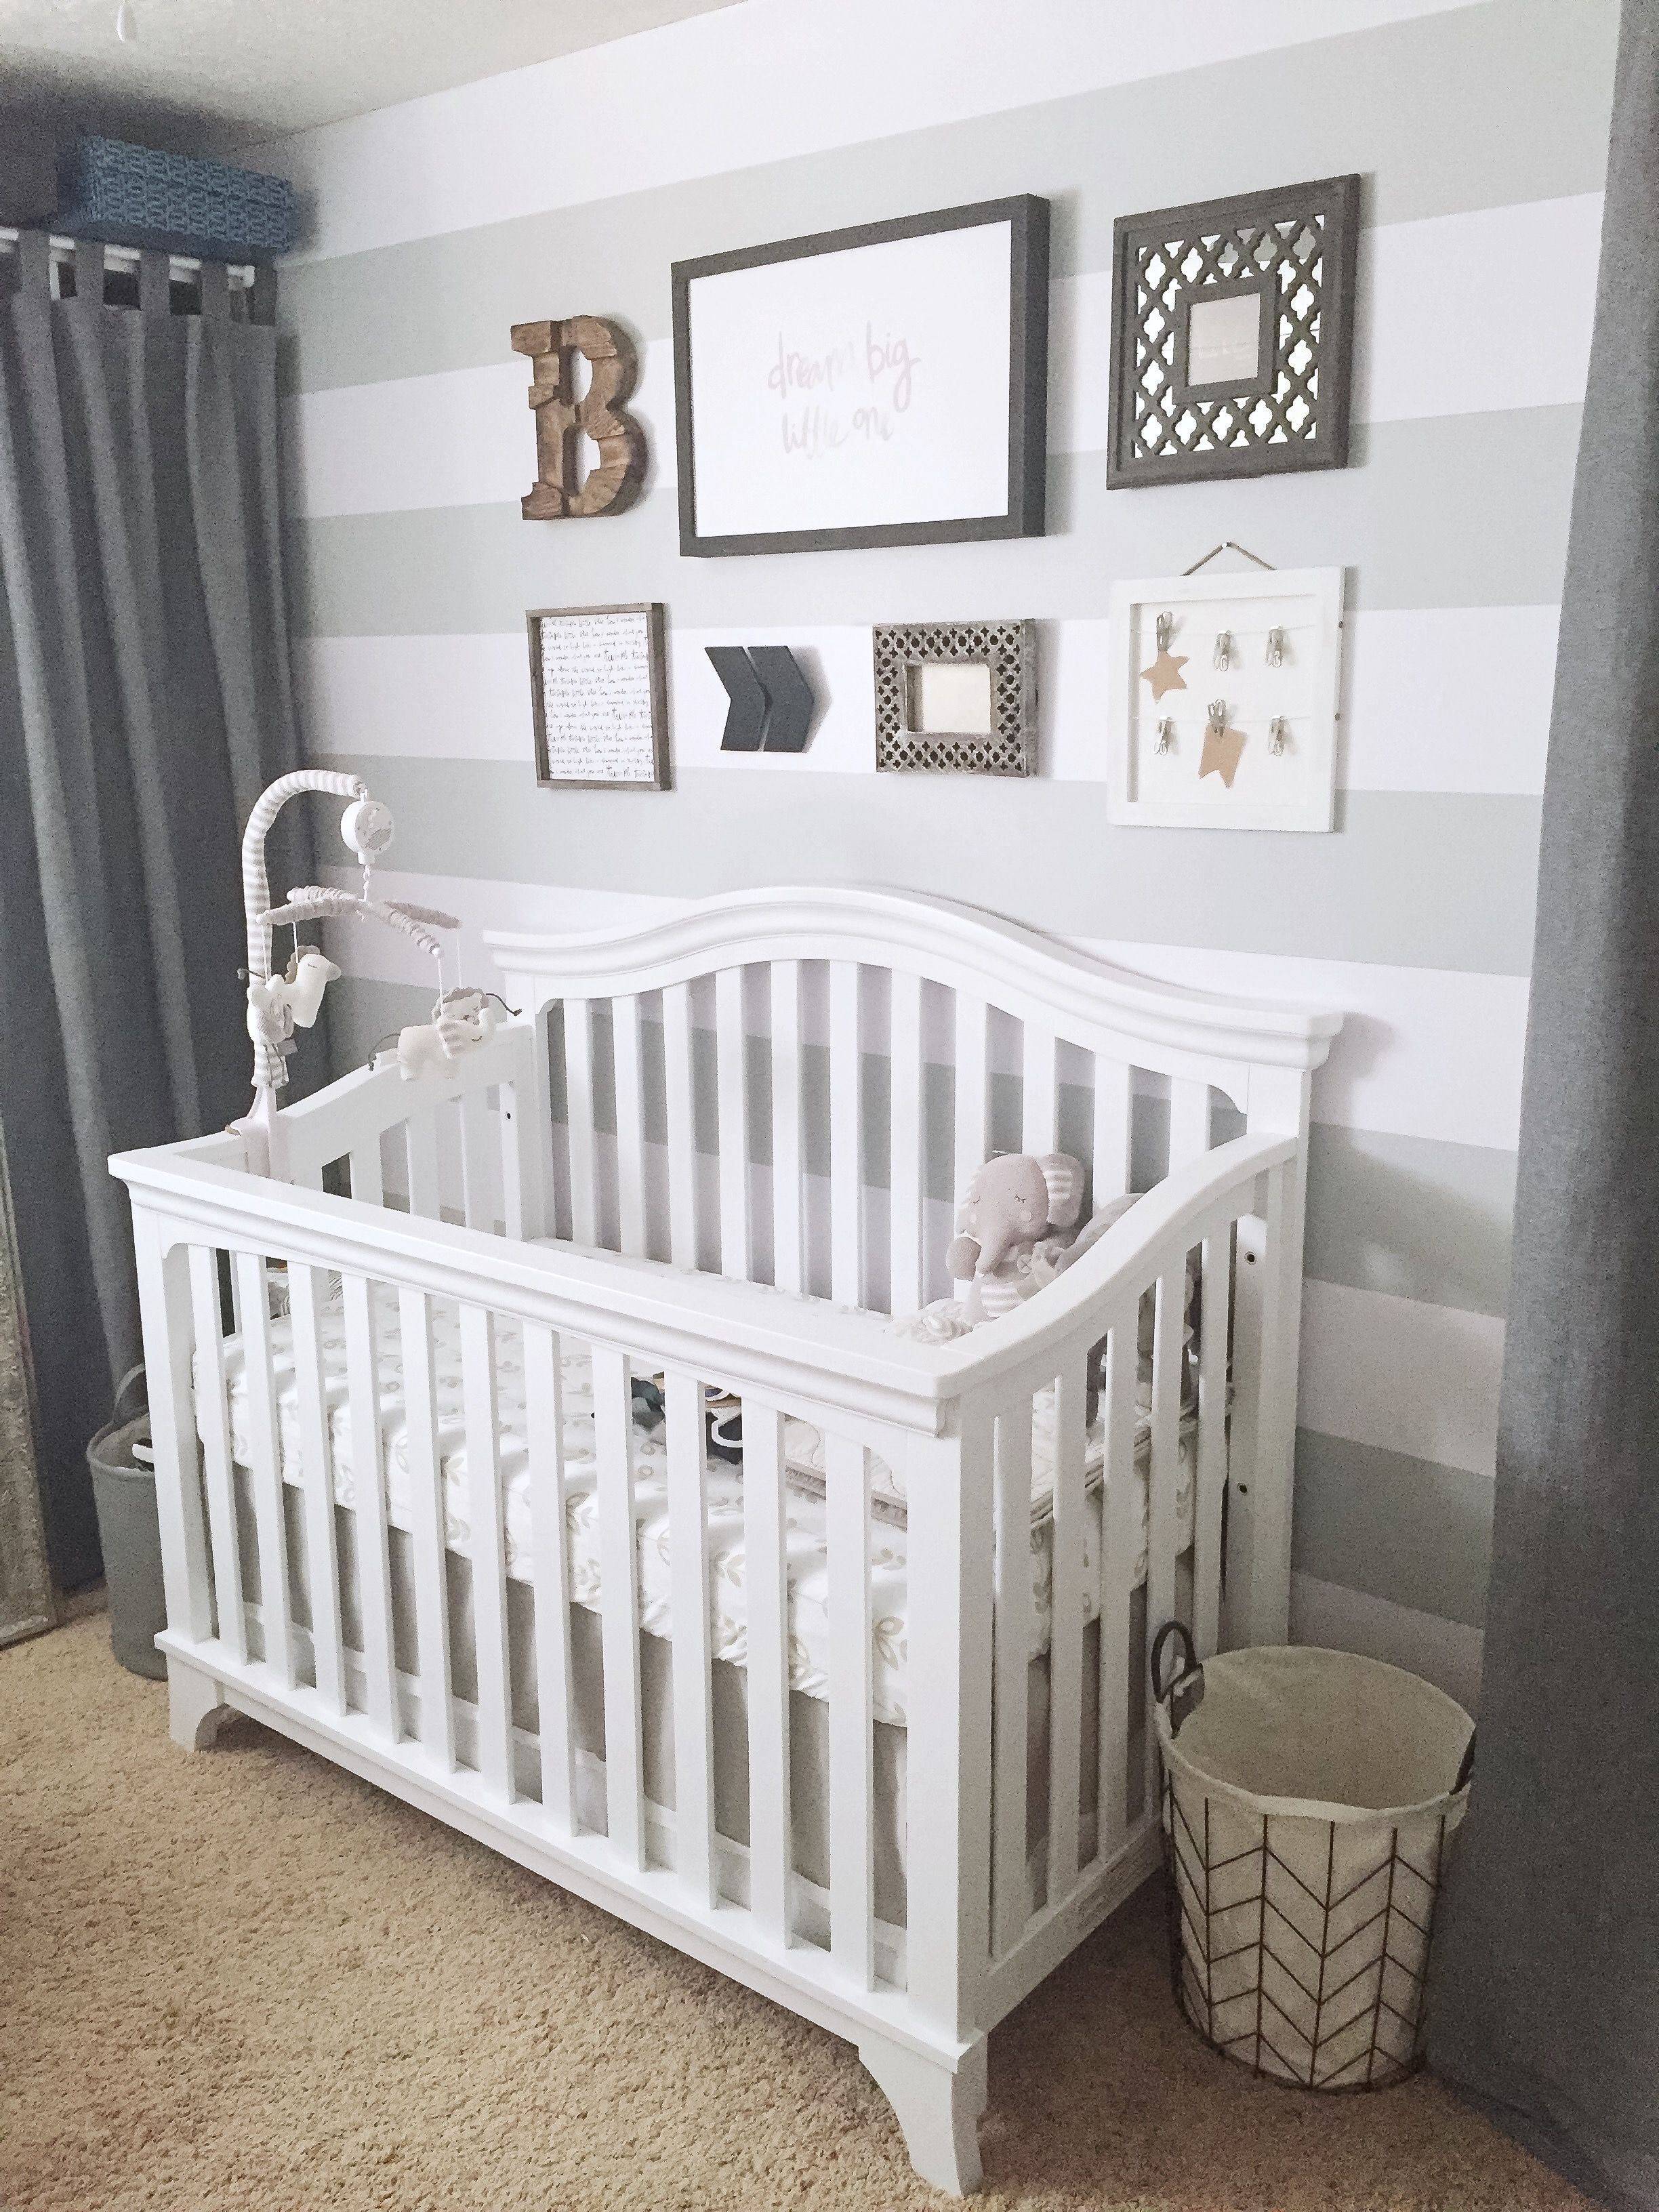 Baby Nurseries For Small Rooms How to Transform a Small Room Into the Perfect Baby Nursery!